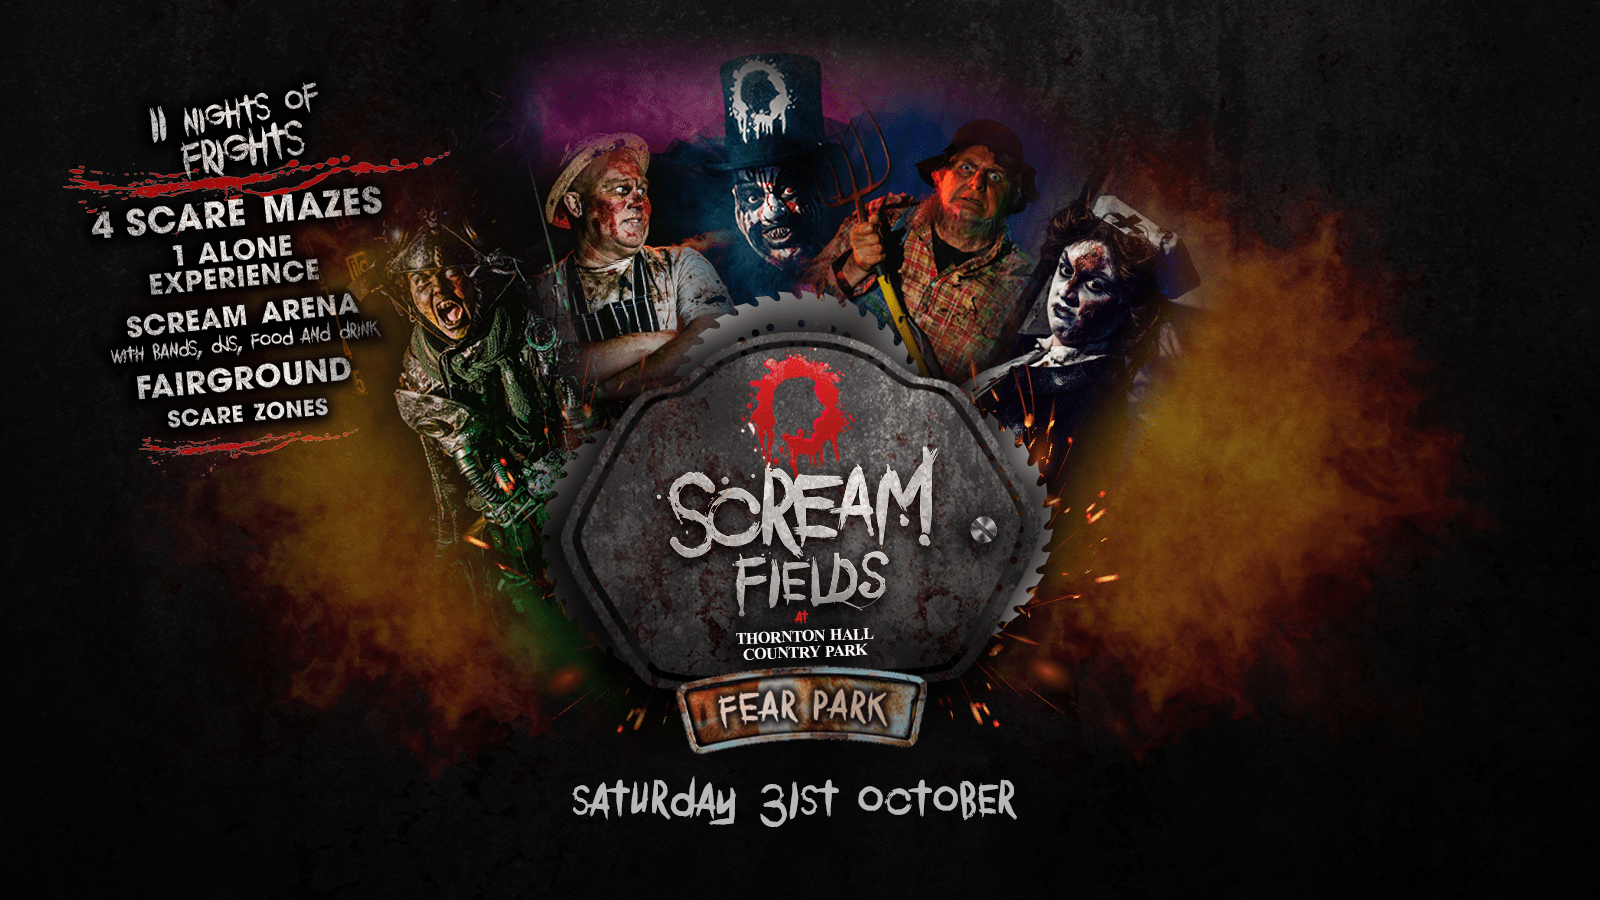 6.45PM – Screamfields: Saturday 31st October 2020